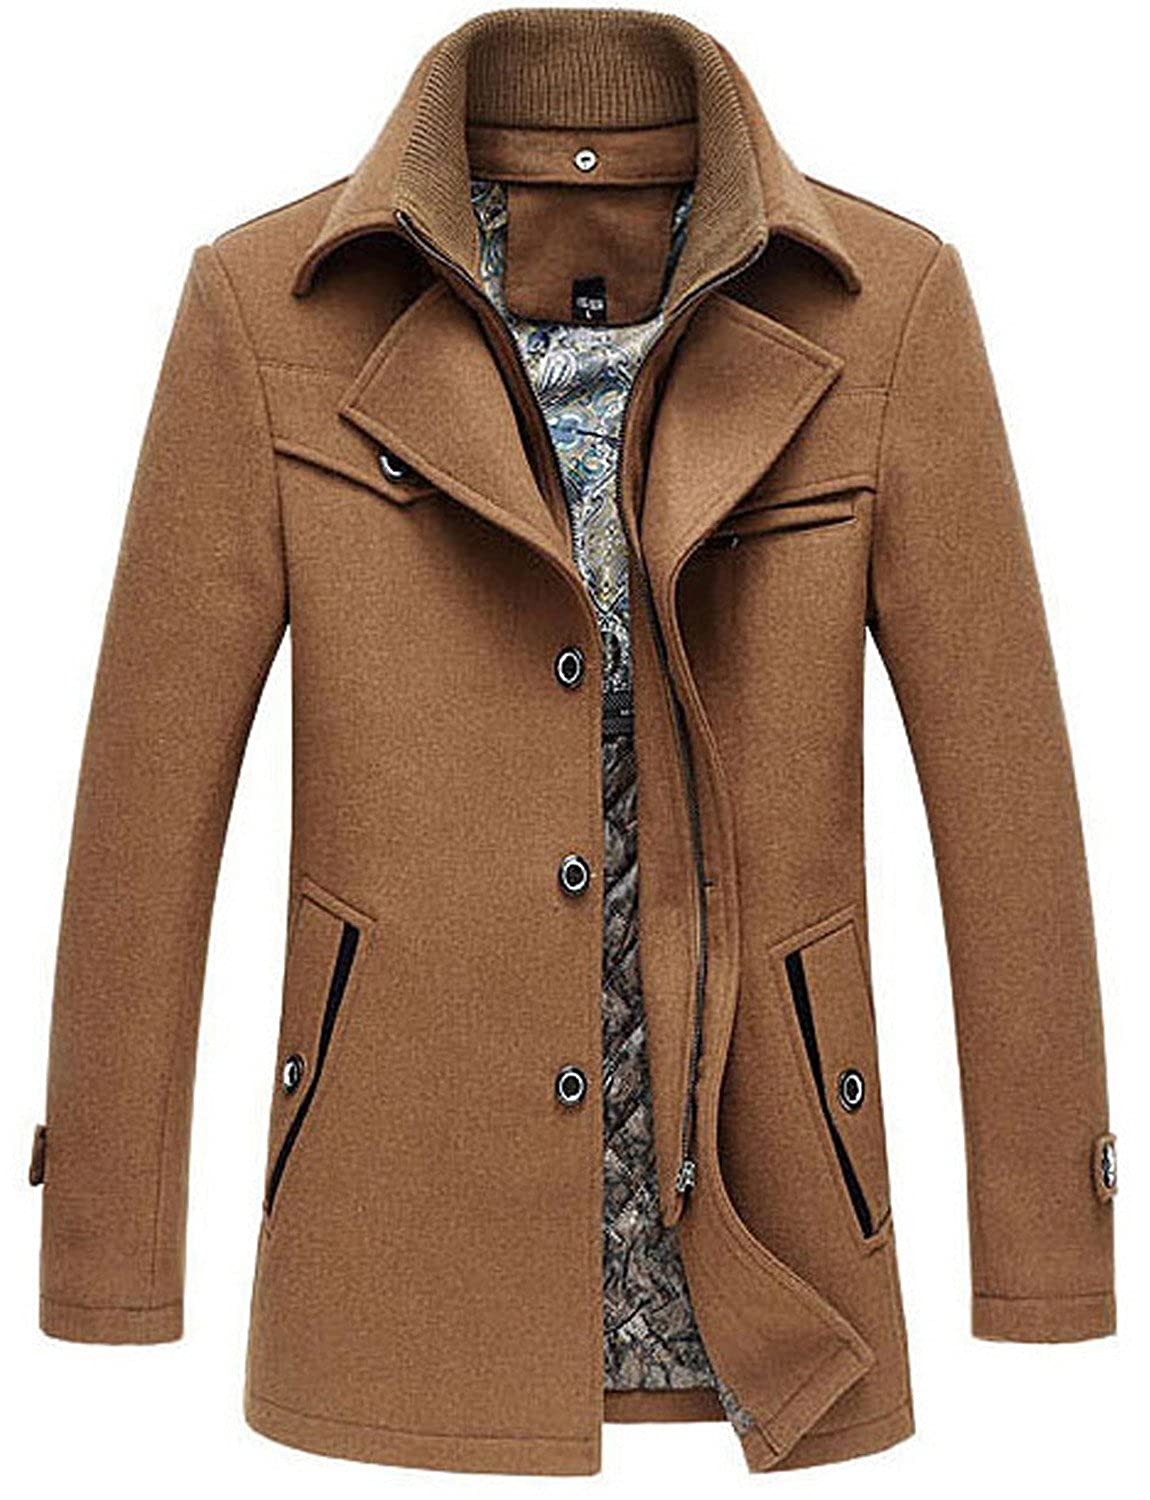 Cloudstyle Autumn and Winter 2016 Casual Men's Woolen Coat Middle-Aged Single Breasted Coat Men Wool Jackets Coats by YFFUSHI YD1153